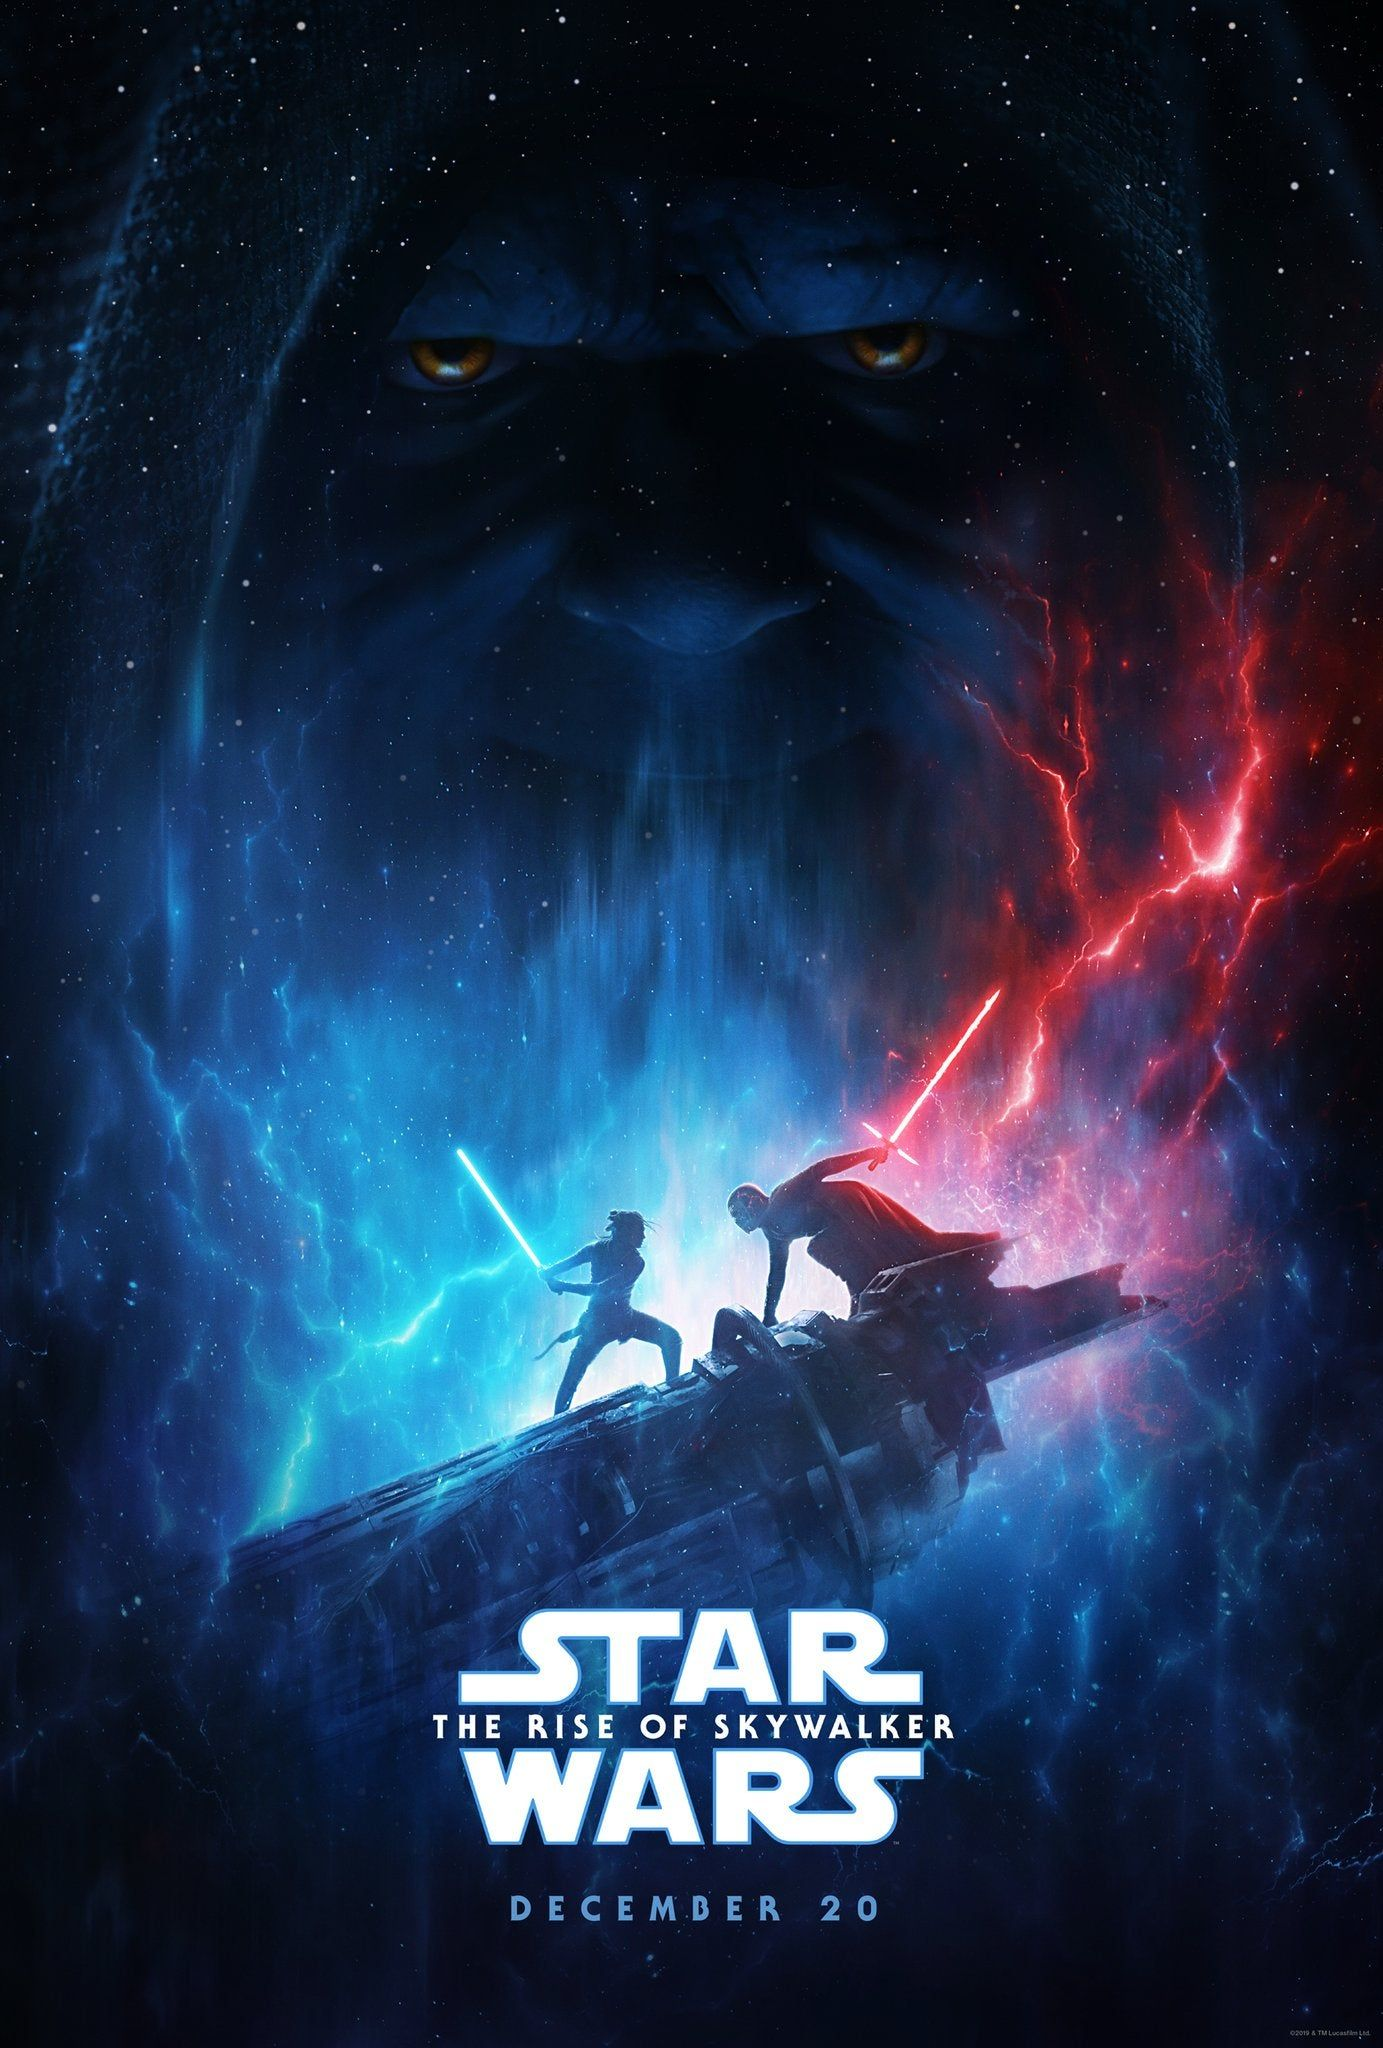 Star Wars The Rise Of Skywalker Official Poster Starwars